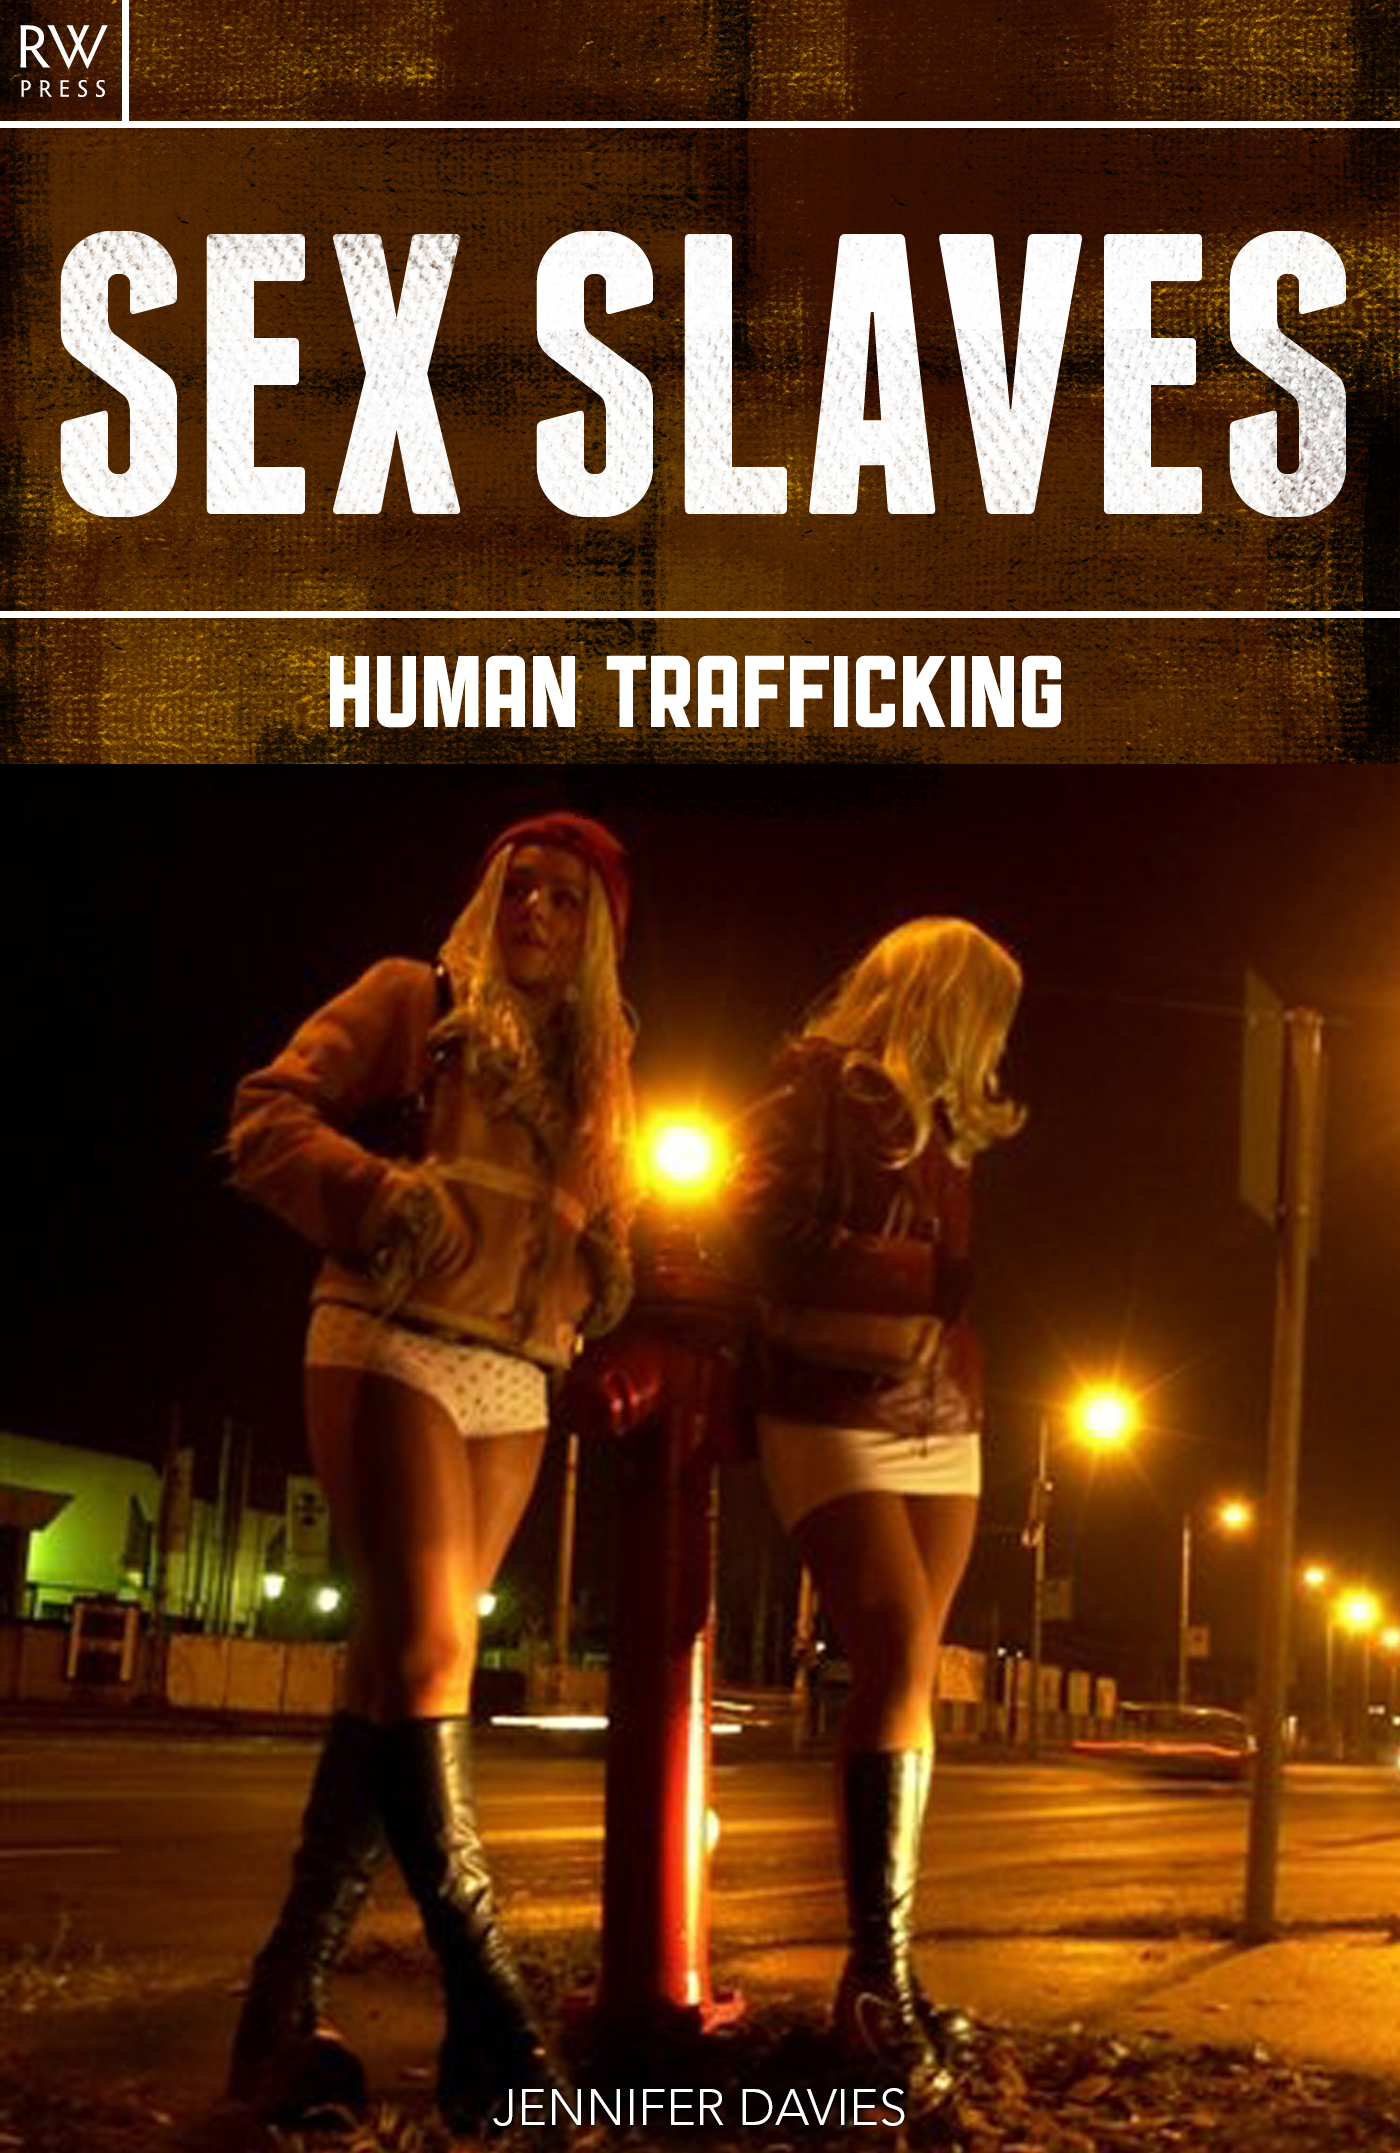 Pornography and human trafficking nsfw picture